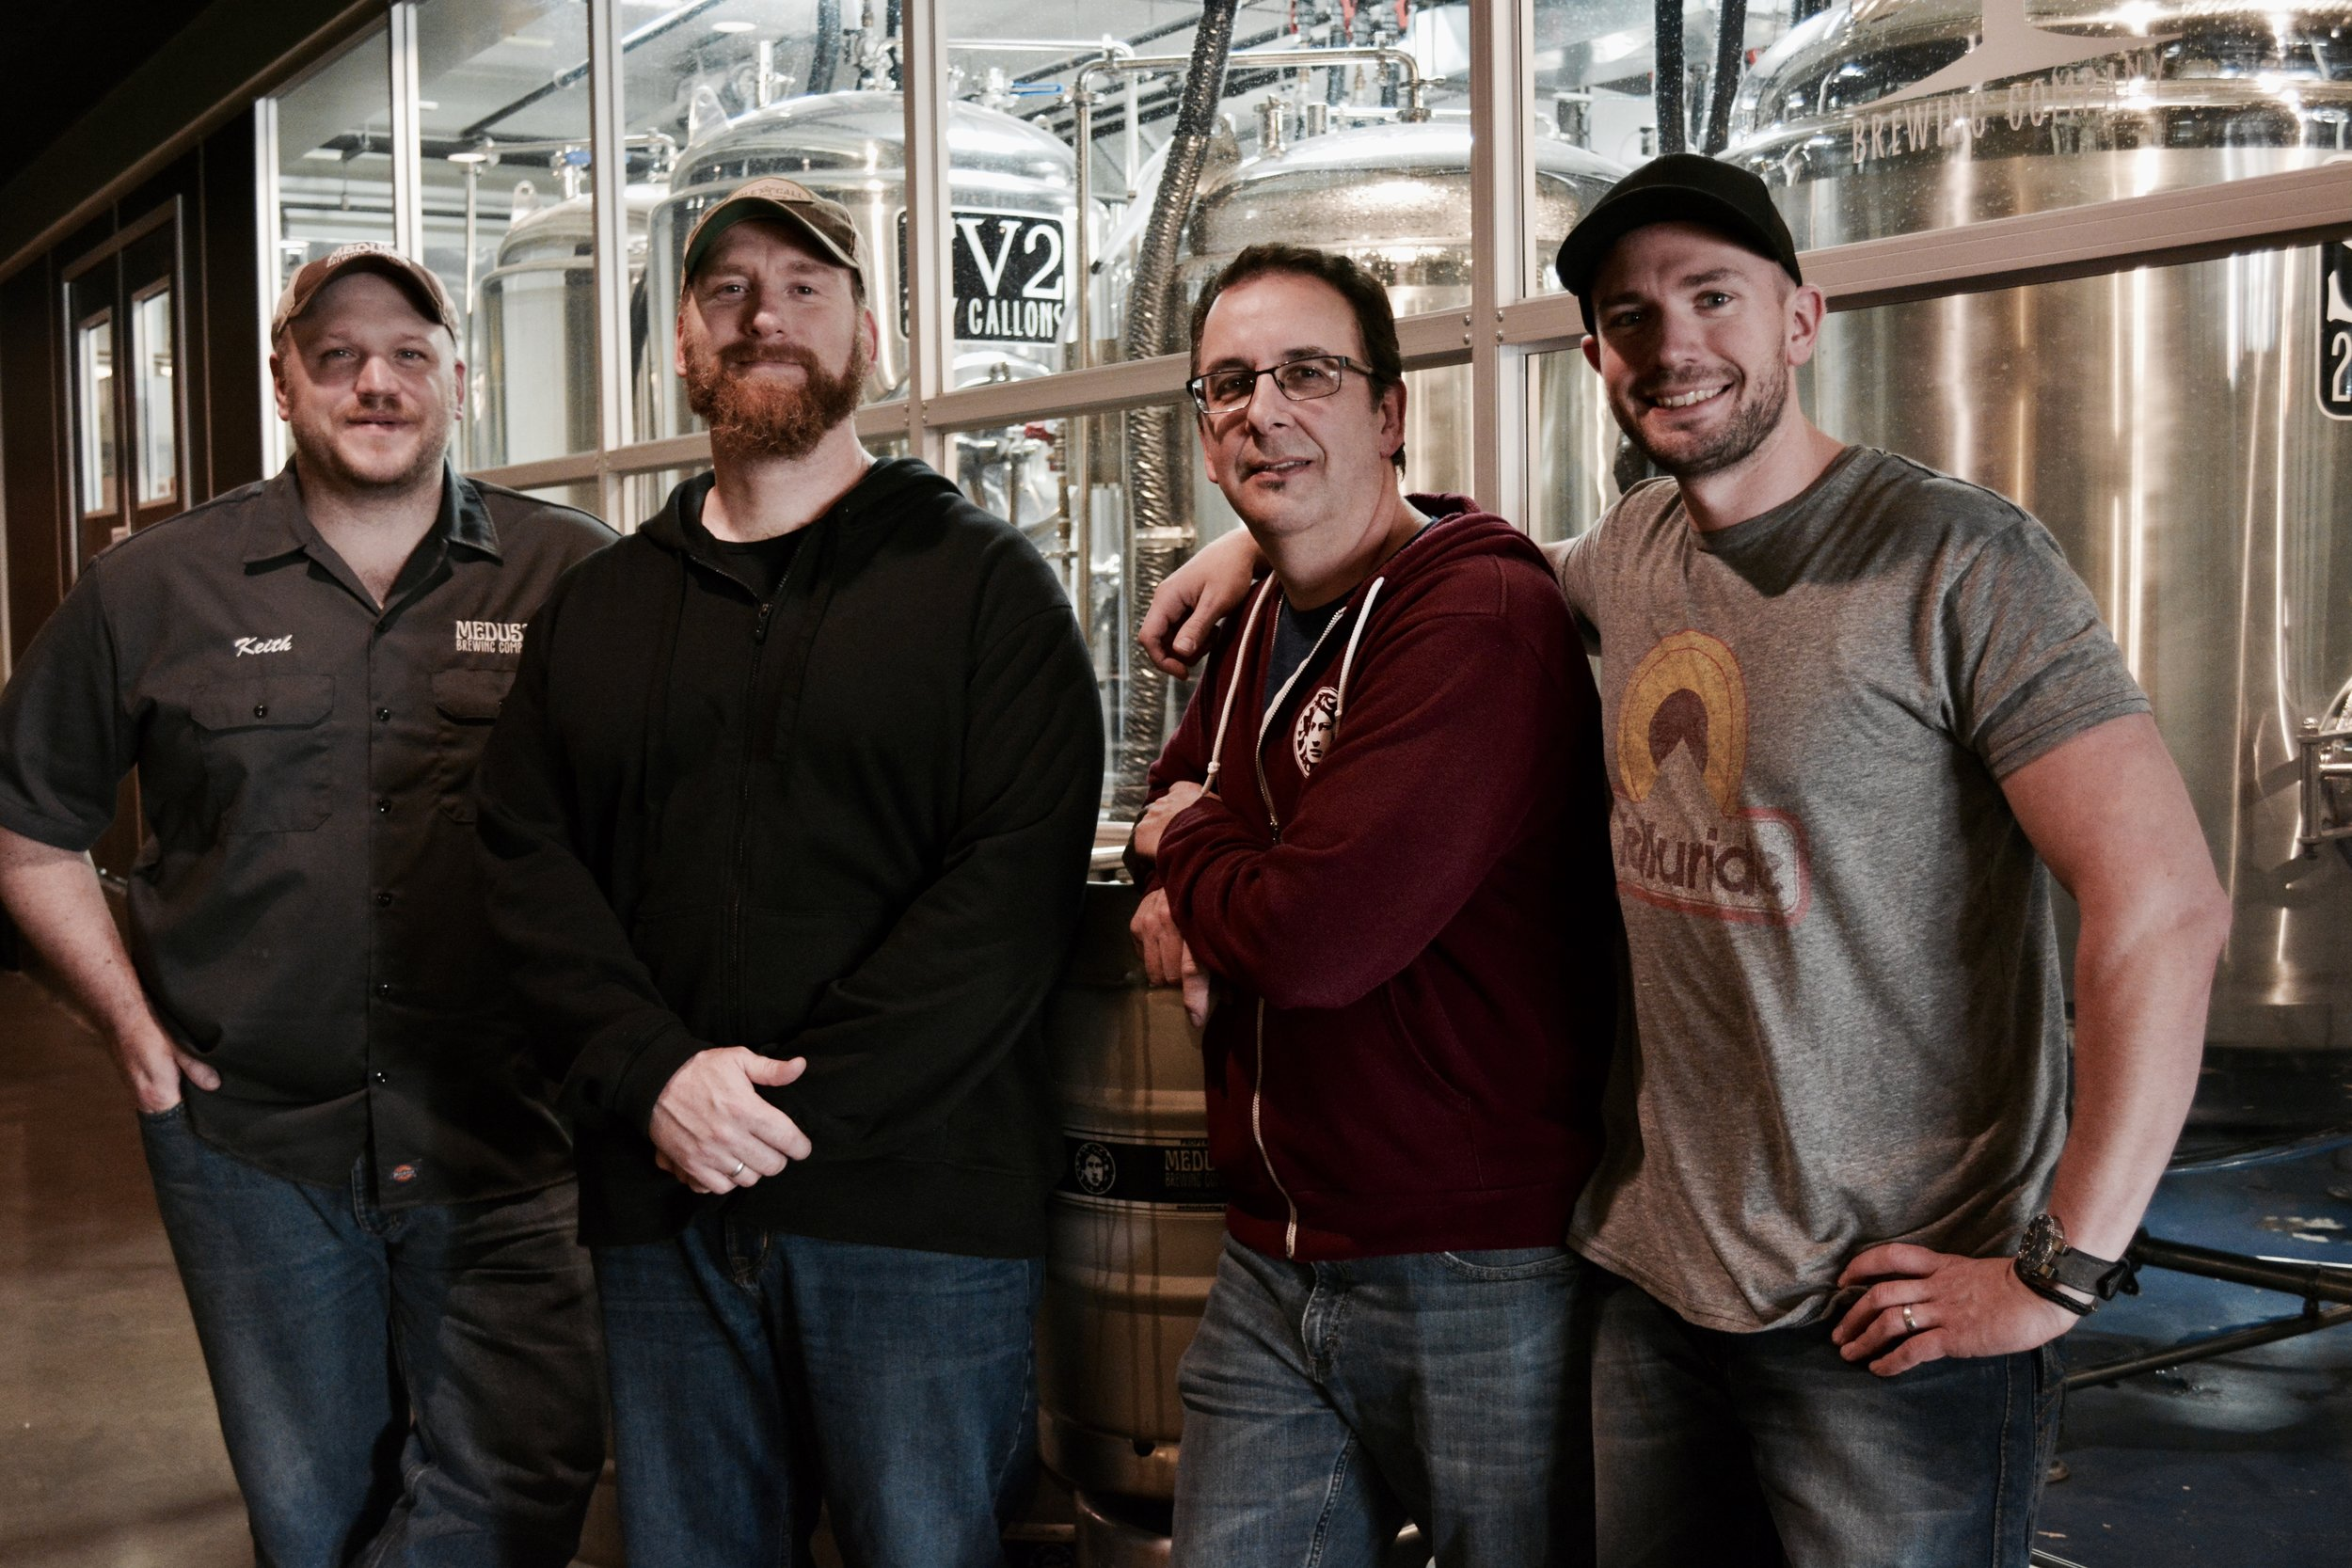 From left to right: Medusa Brewing Company Co-founder and Head Brewer Keith Antul, Dave Pappas, Co-founder Tom Sutter, and Co-founder Keith Sullivan